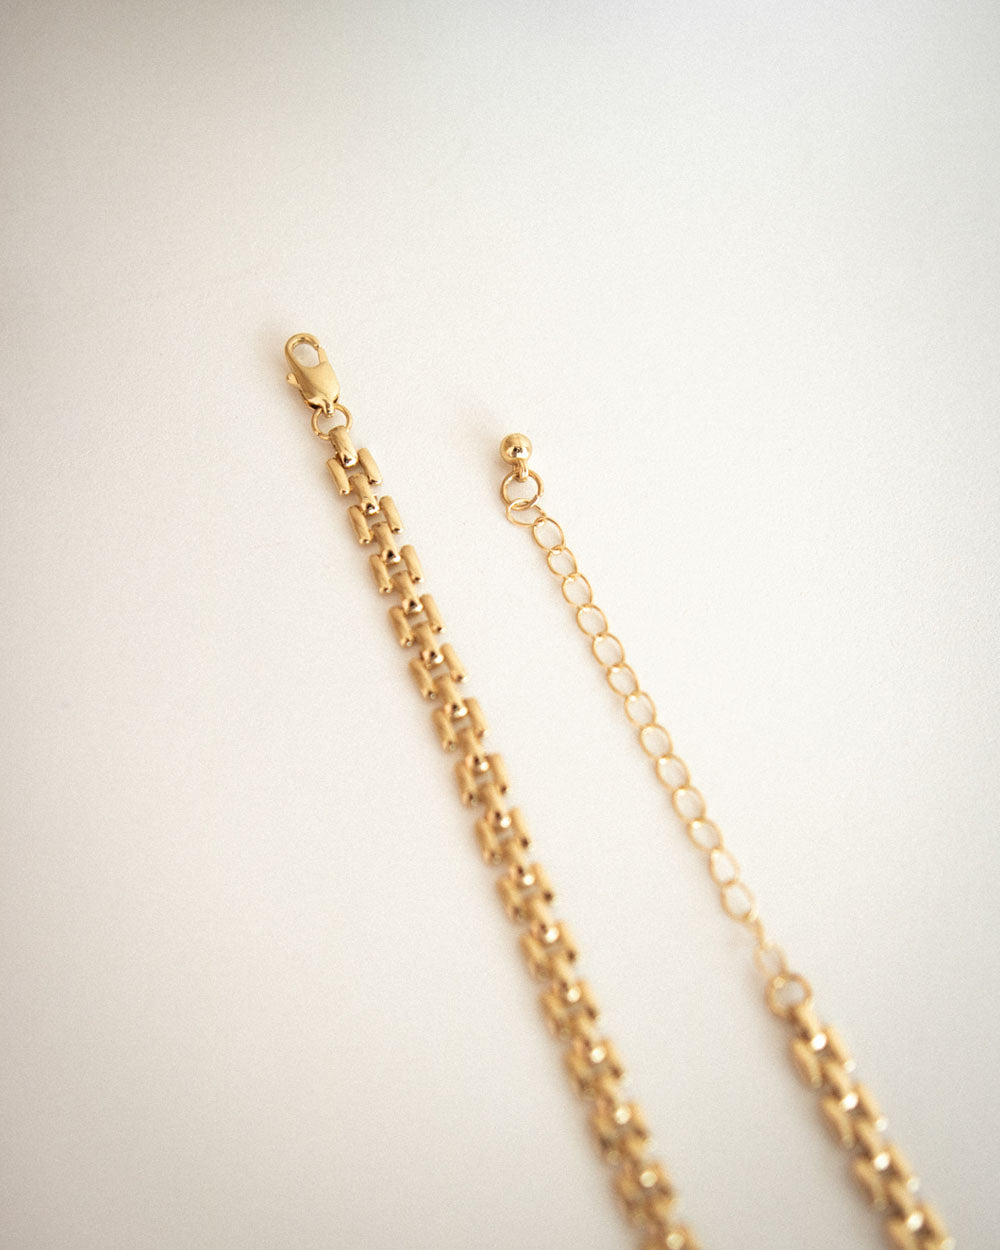 Trendy chain necklace with versatile extender for different lengths - Tetris Choker by The Hexad